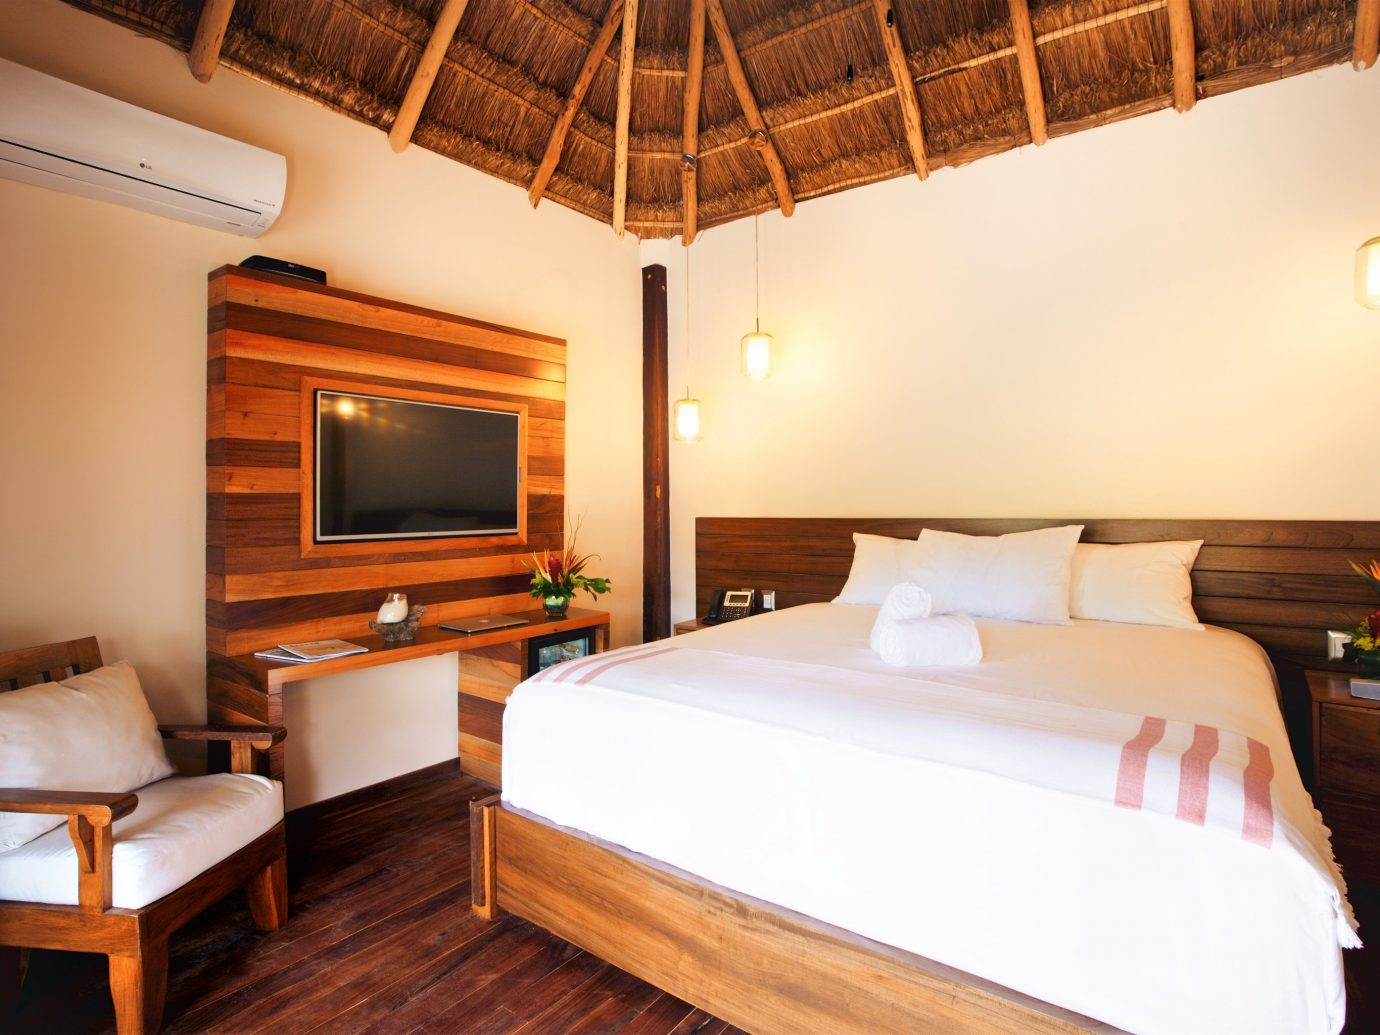 Boutique Hotels Hotels Mexico Tulum indoor wall floor bed room Bedroom Suite ceiling hotel boarding house real estate interior design furniture estate wood